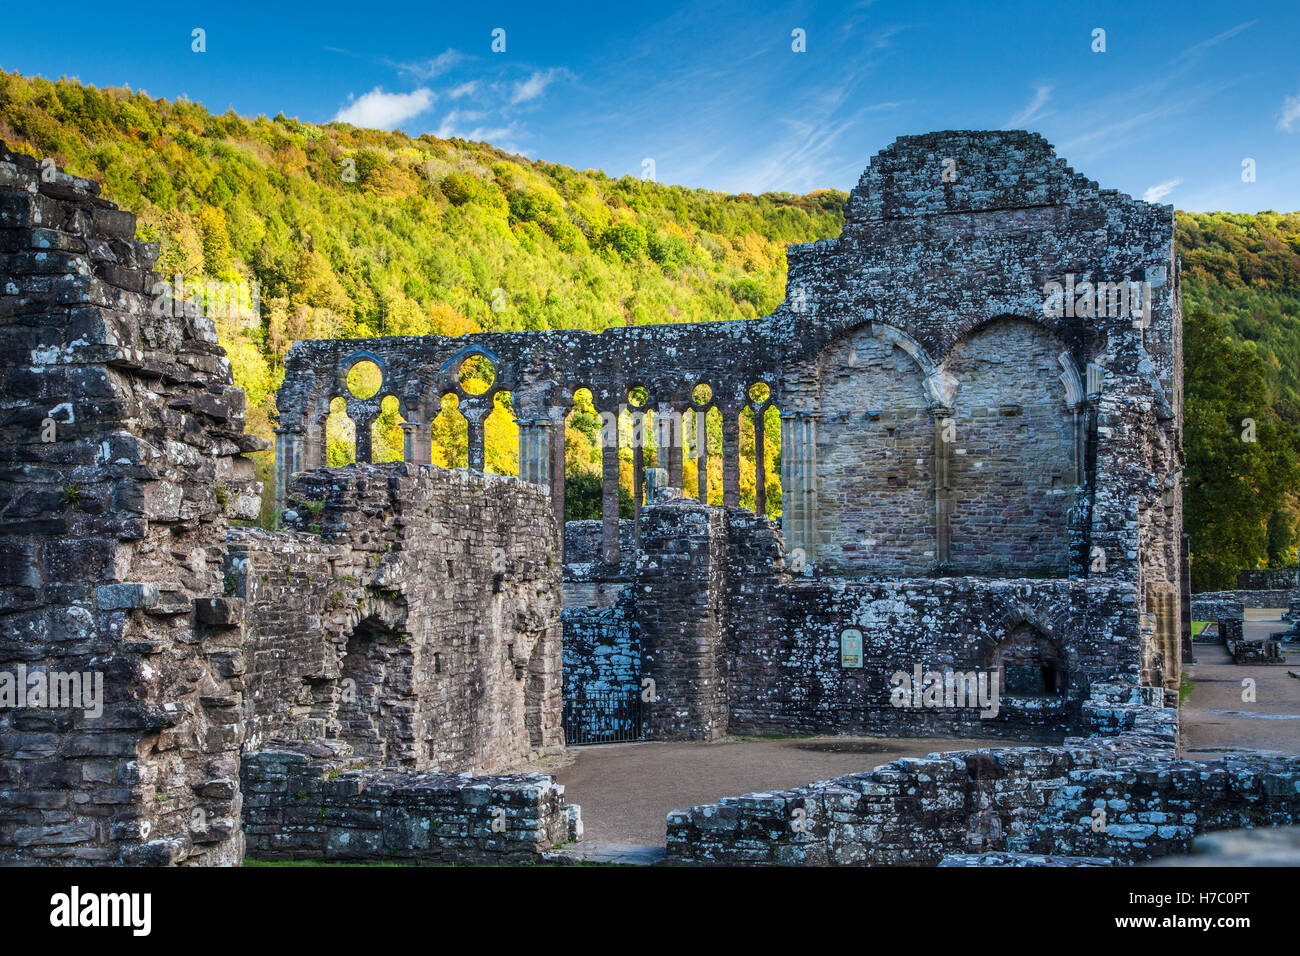 Tintern Abbey in Monmouthshire, Wales. - Stock Image